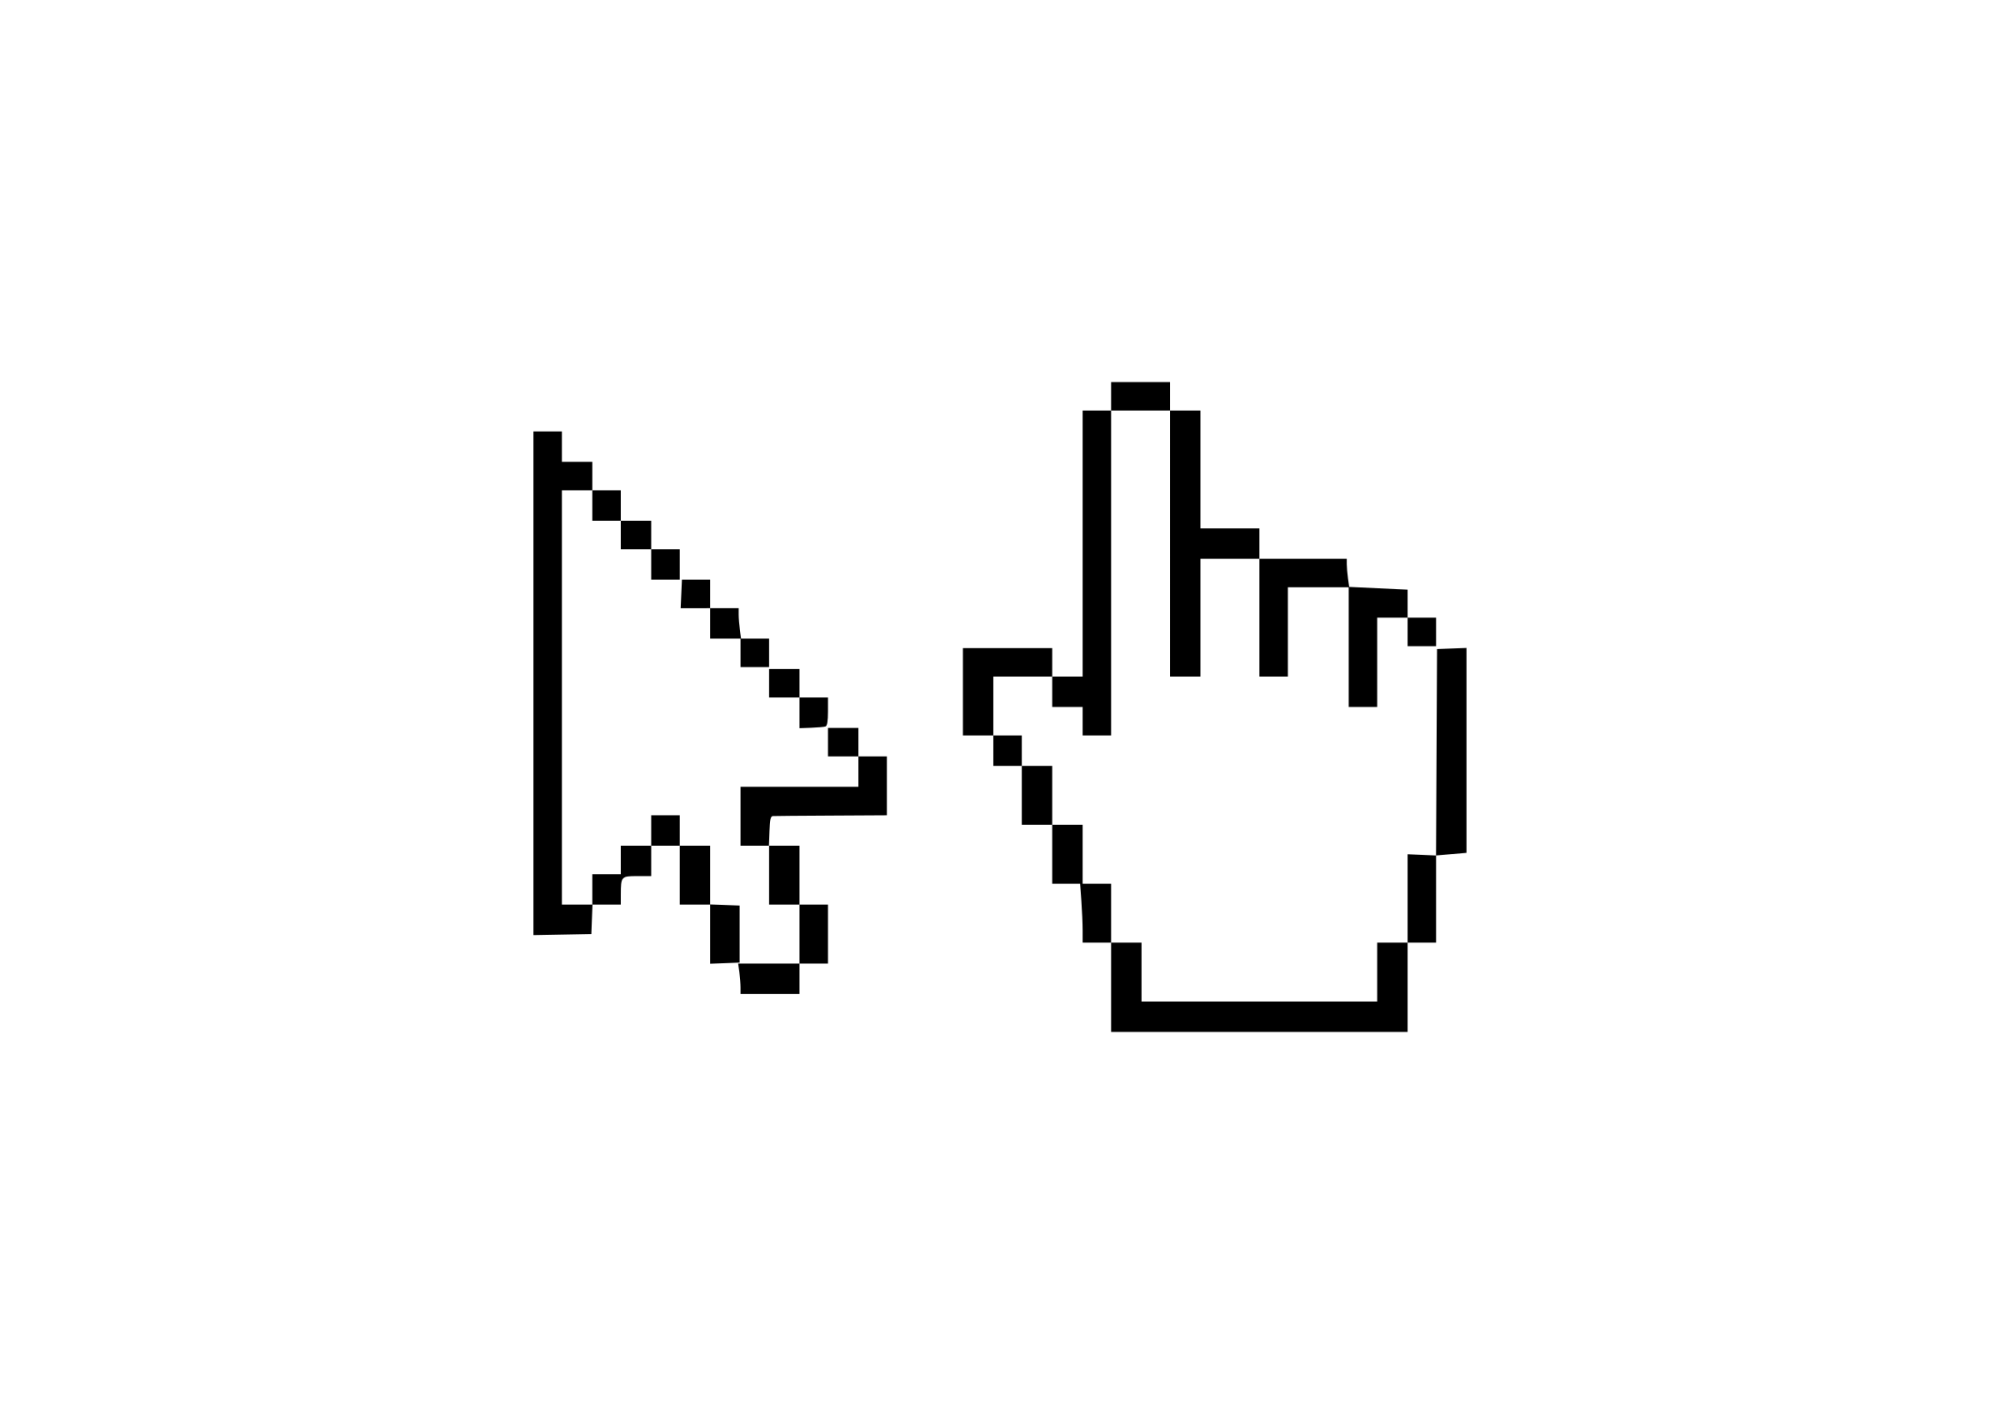 hight resolution of big image png mouse cursor click clipart